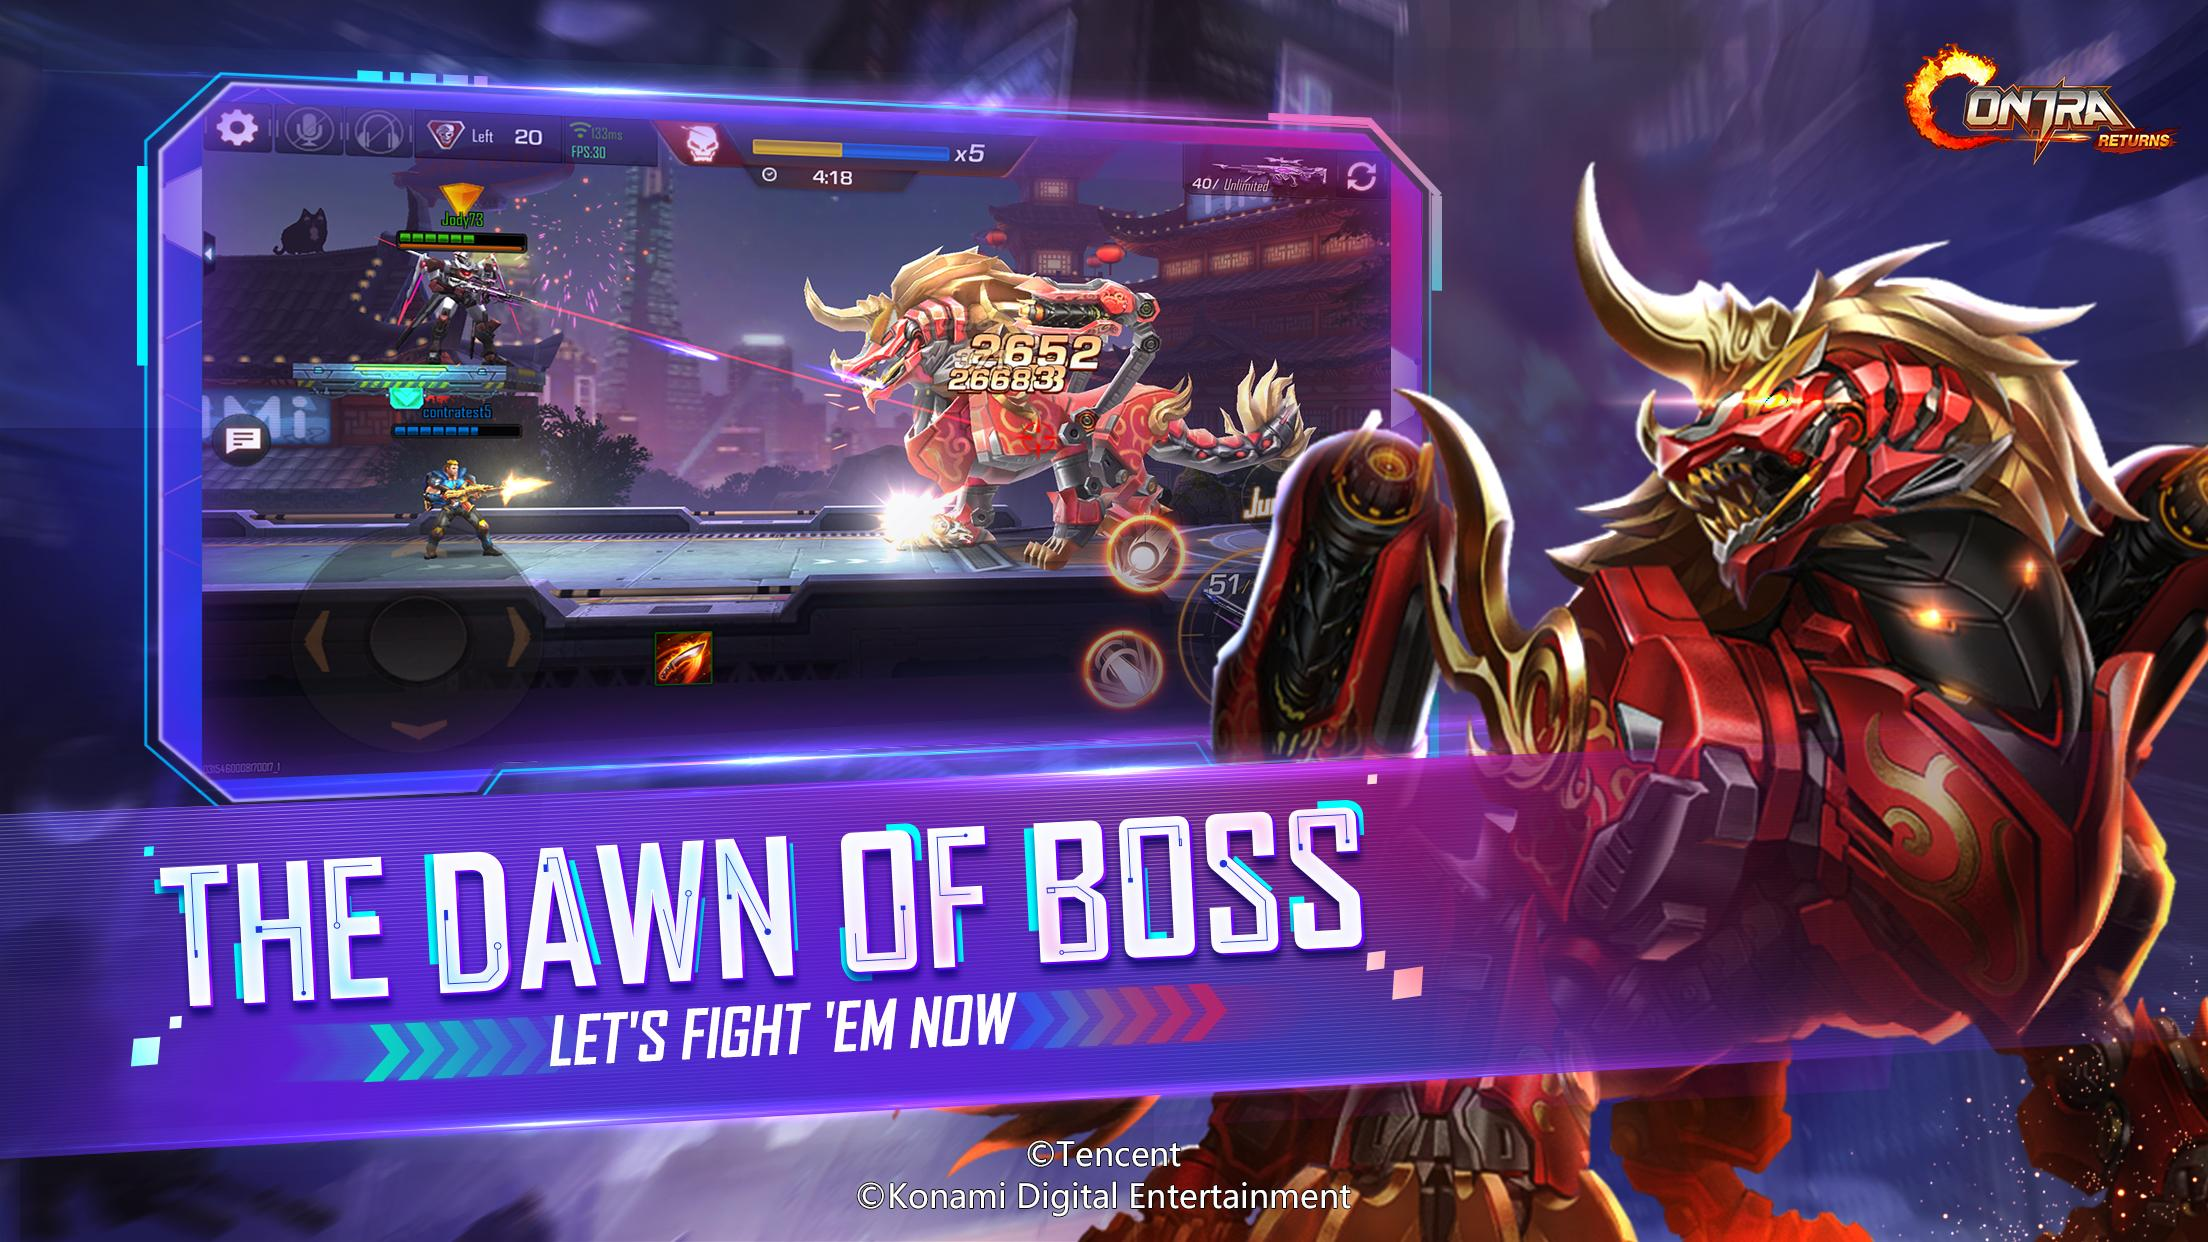 Download Garena Contra Returns on PC with BlueStacks